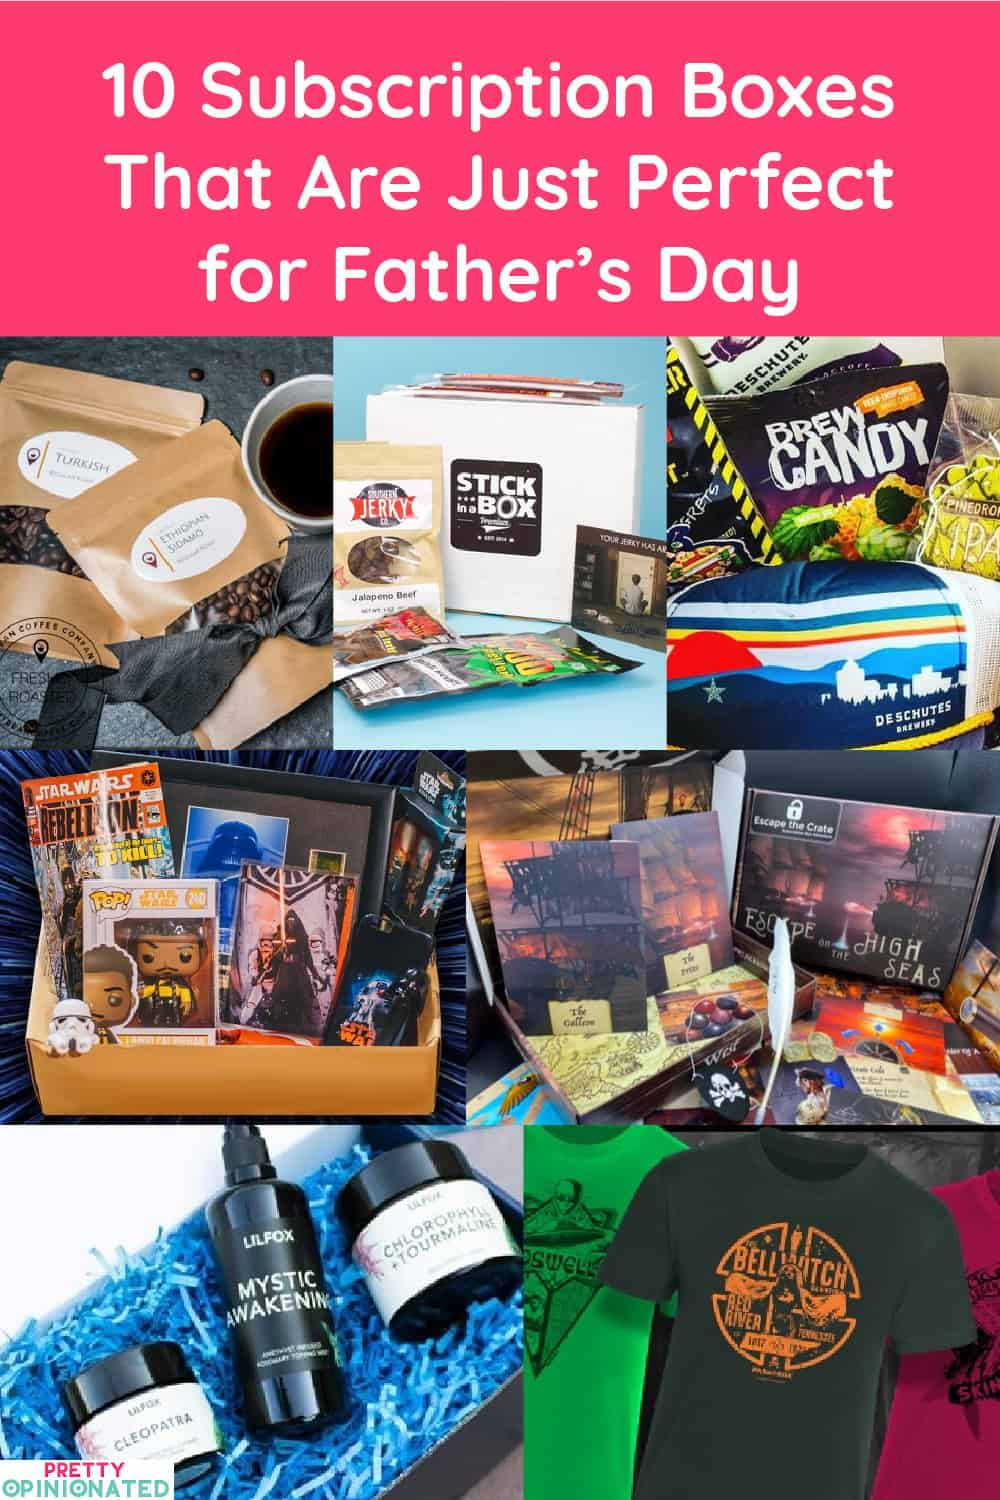 From the ultimate BBQ tools to nifty finds for geeky dads, these subscription boxes prove that sometimes it's okay to think INSIDE the box for Father's Day gift ideas. Check them out!